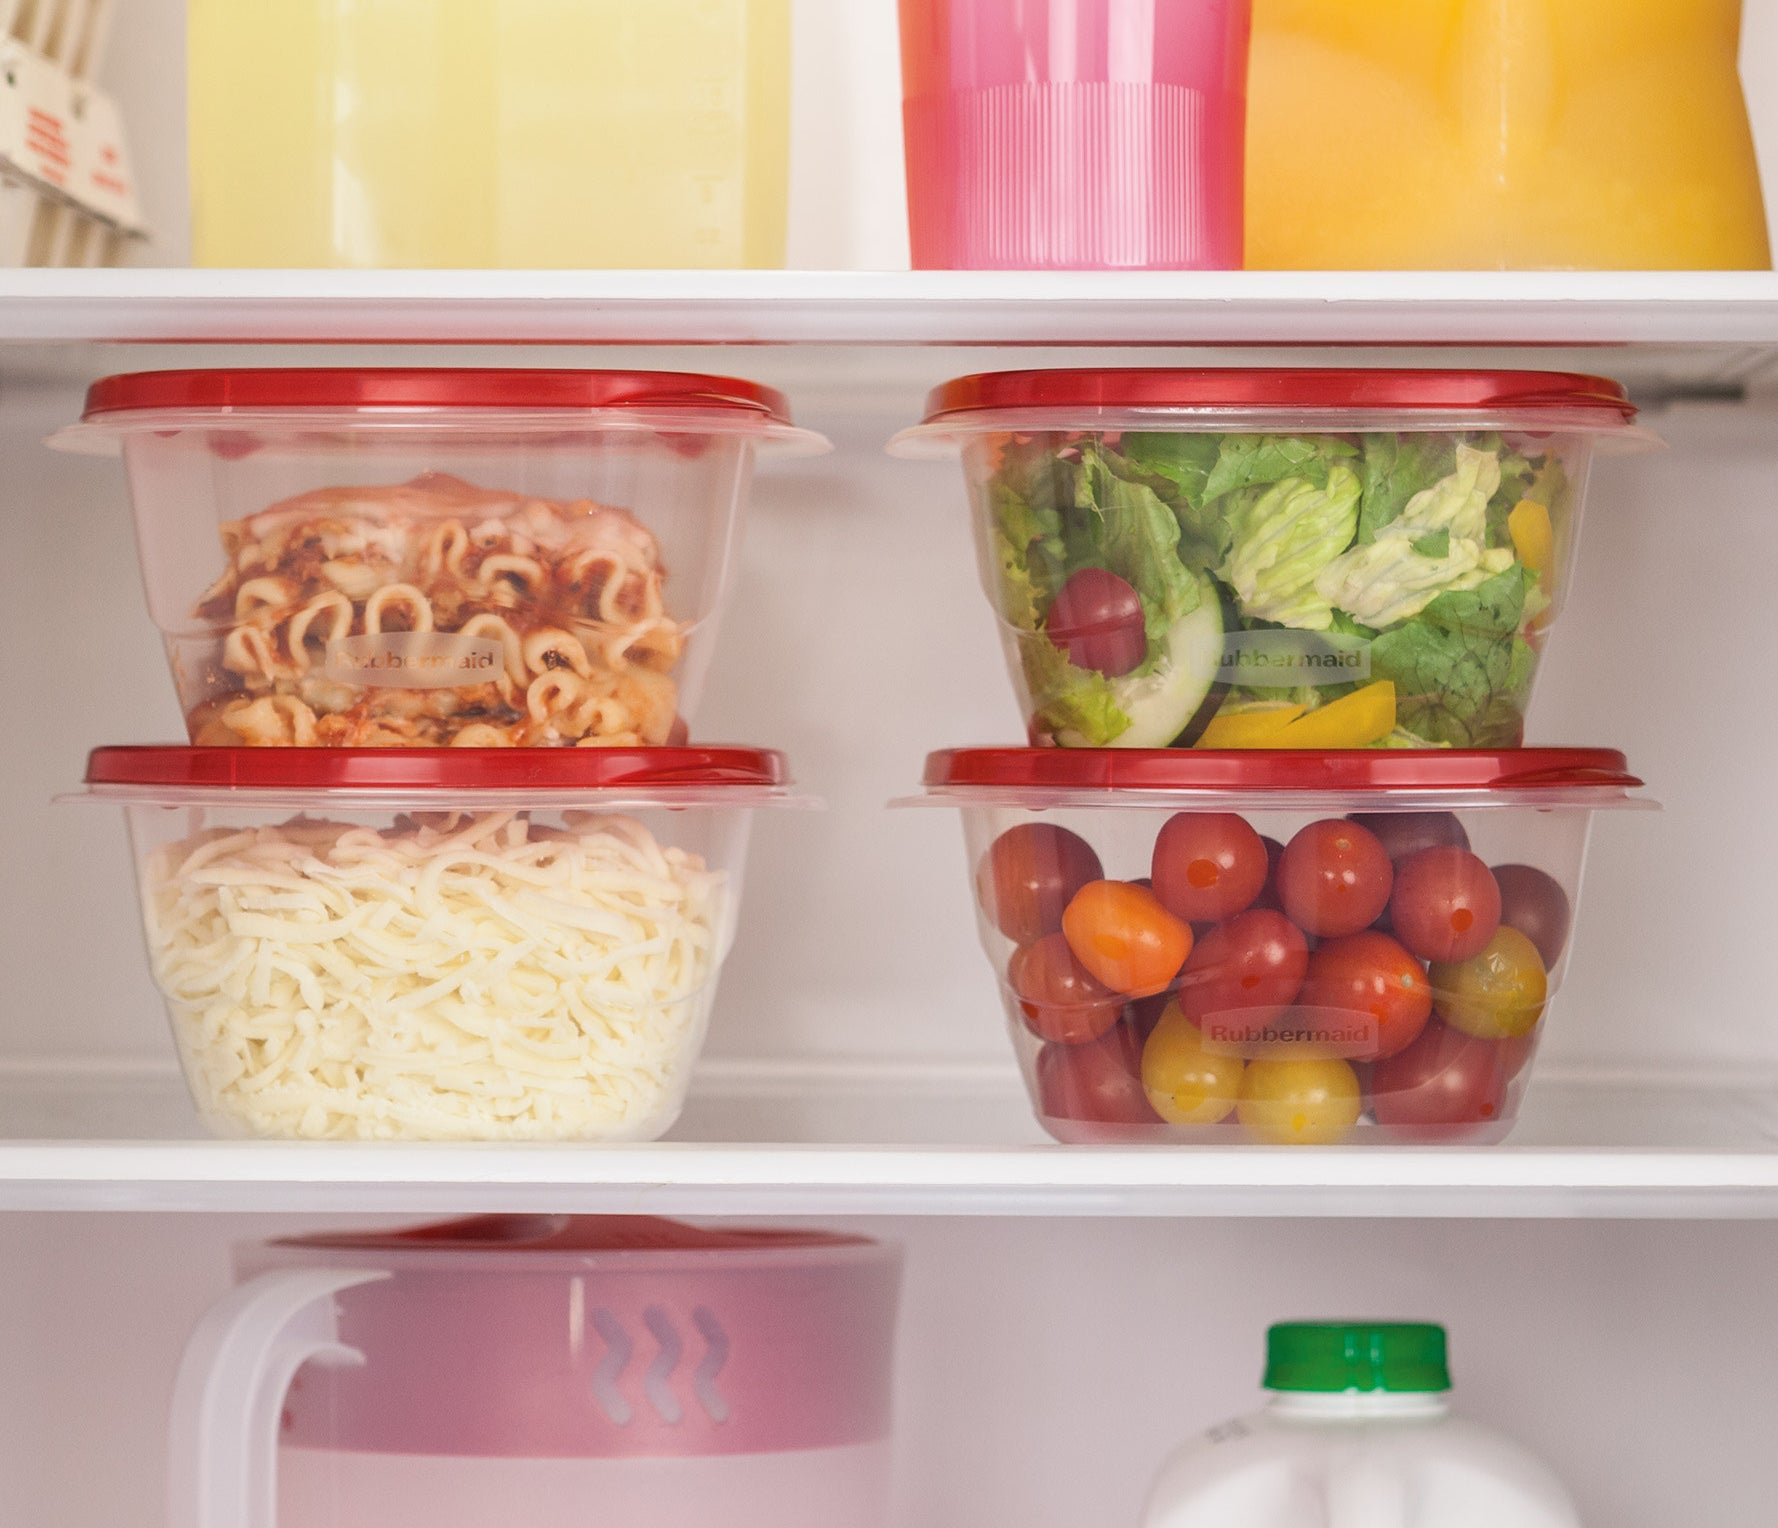 four food containers with red lids holding various leftovers in a fridge